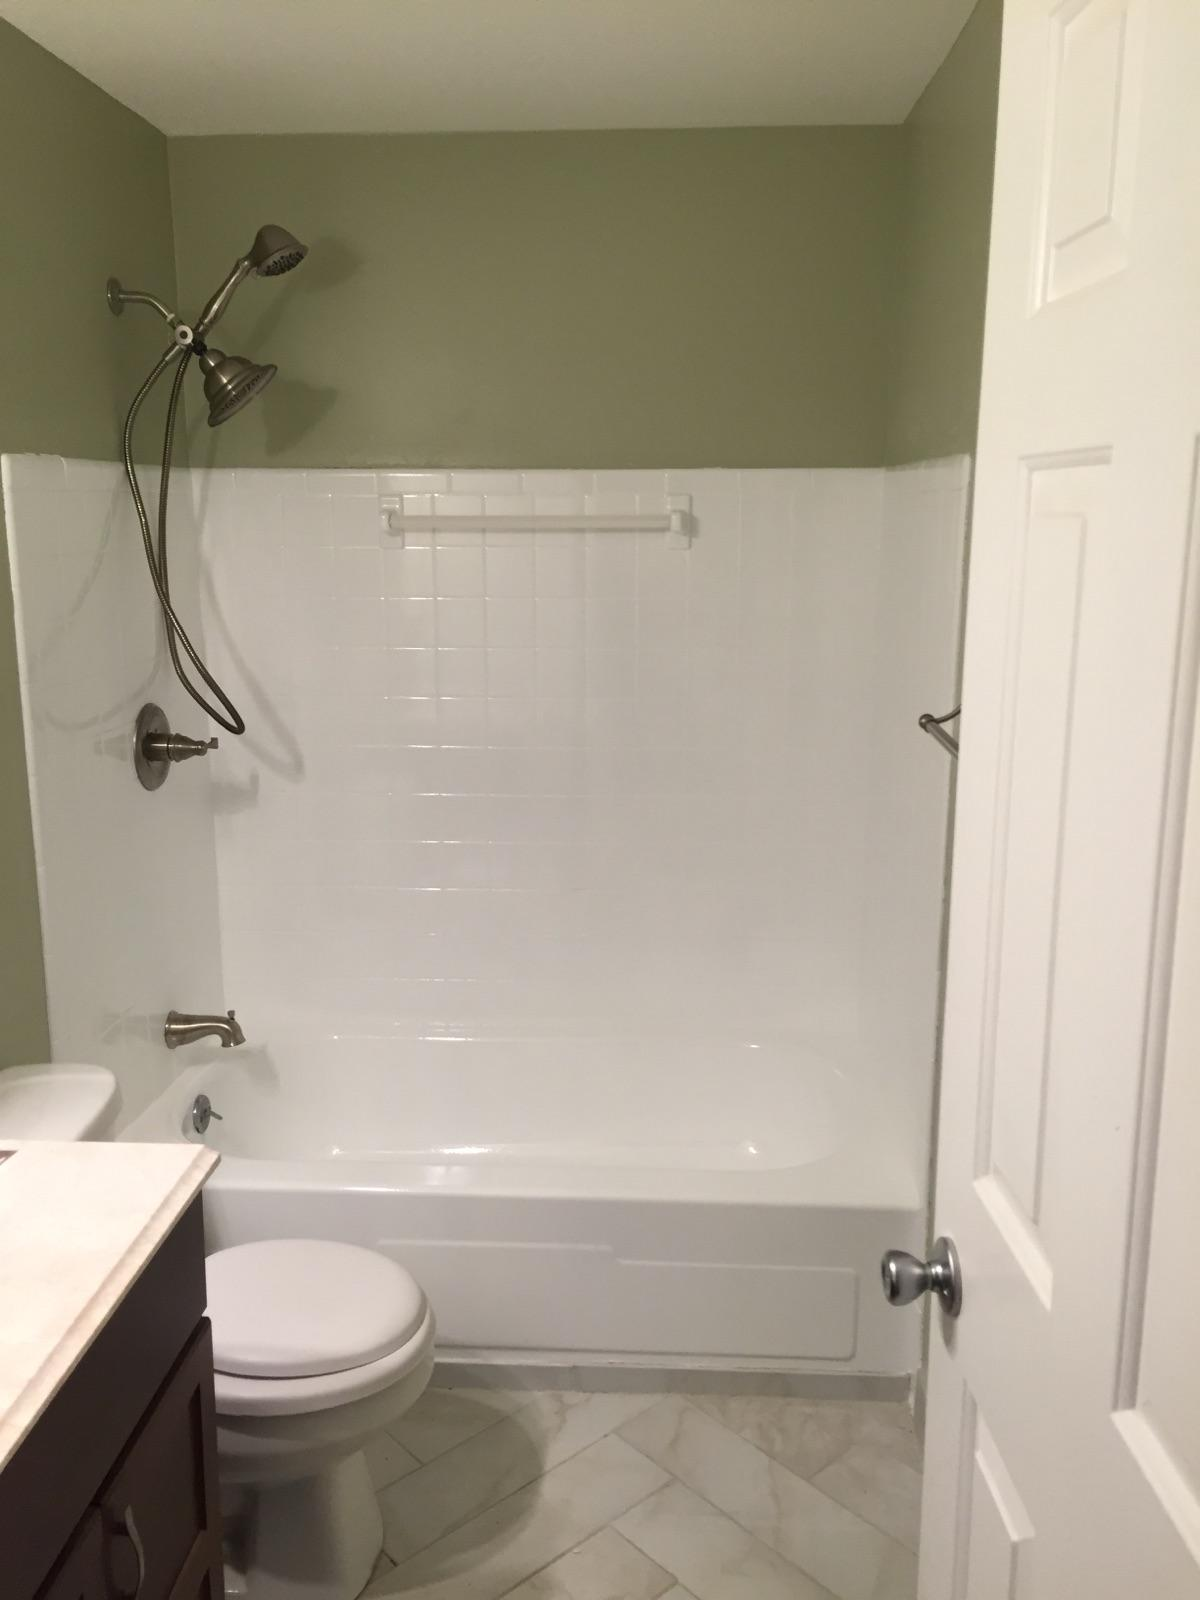 Bathtub Refinishing Rochester NY | Bathroom Refinishing Rochester, NY